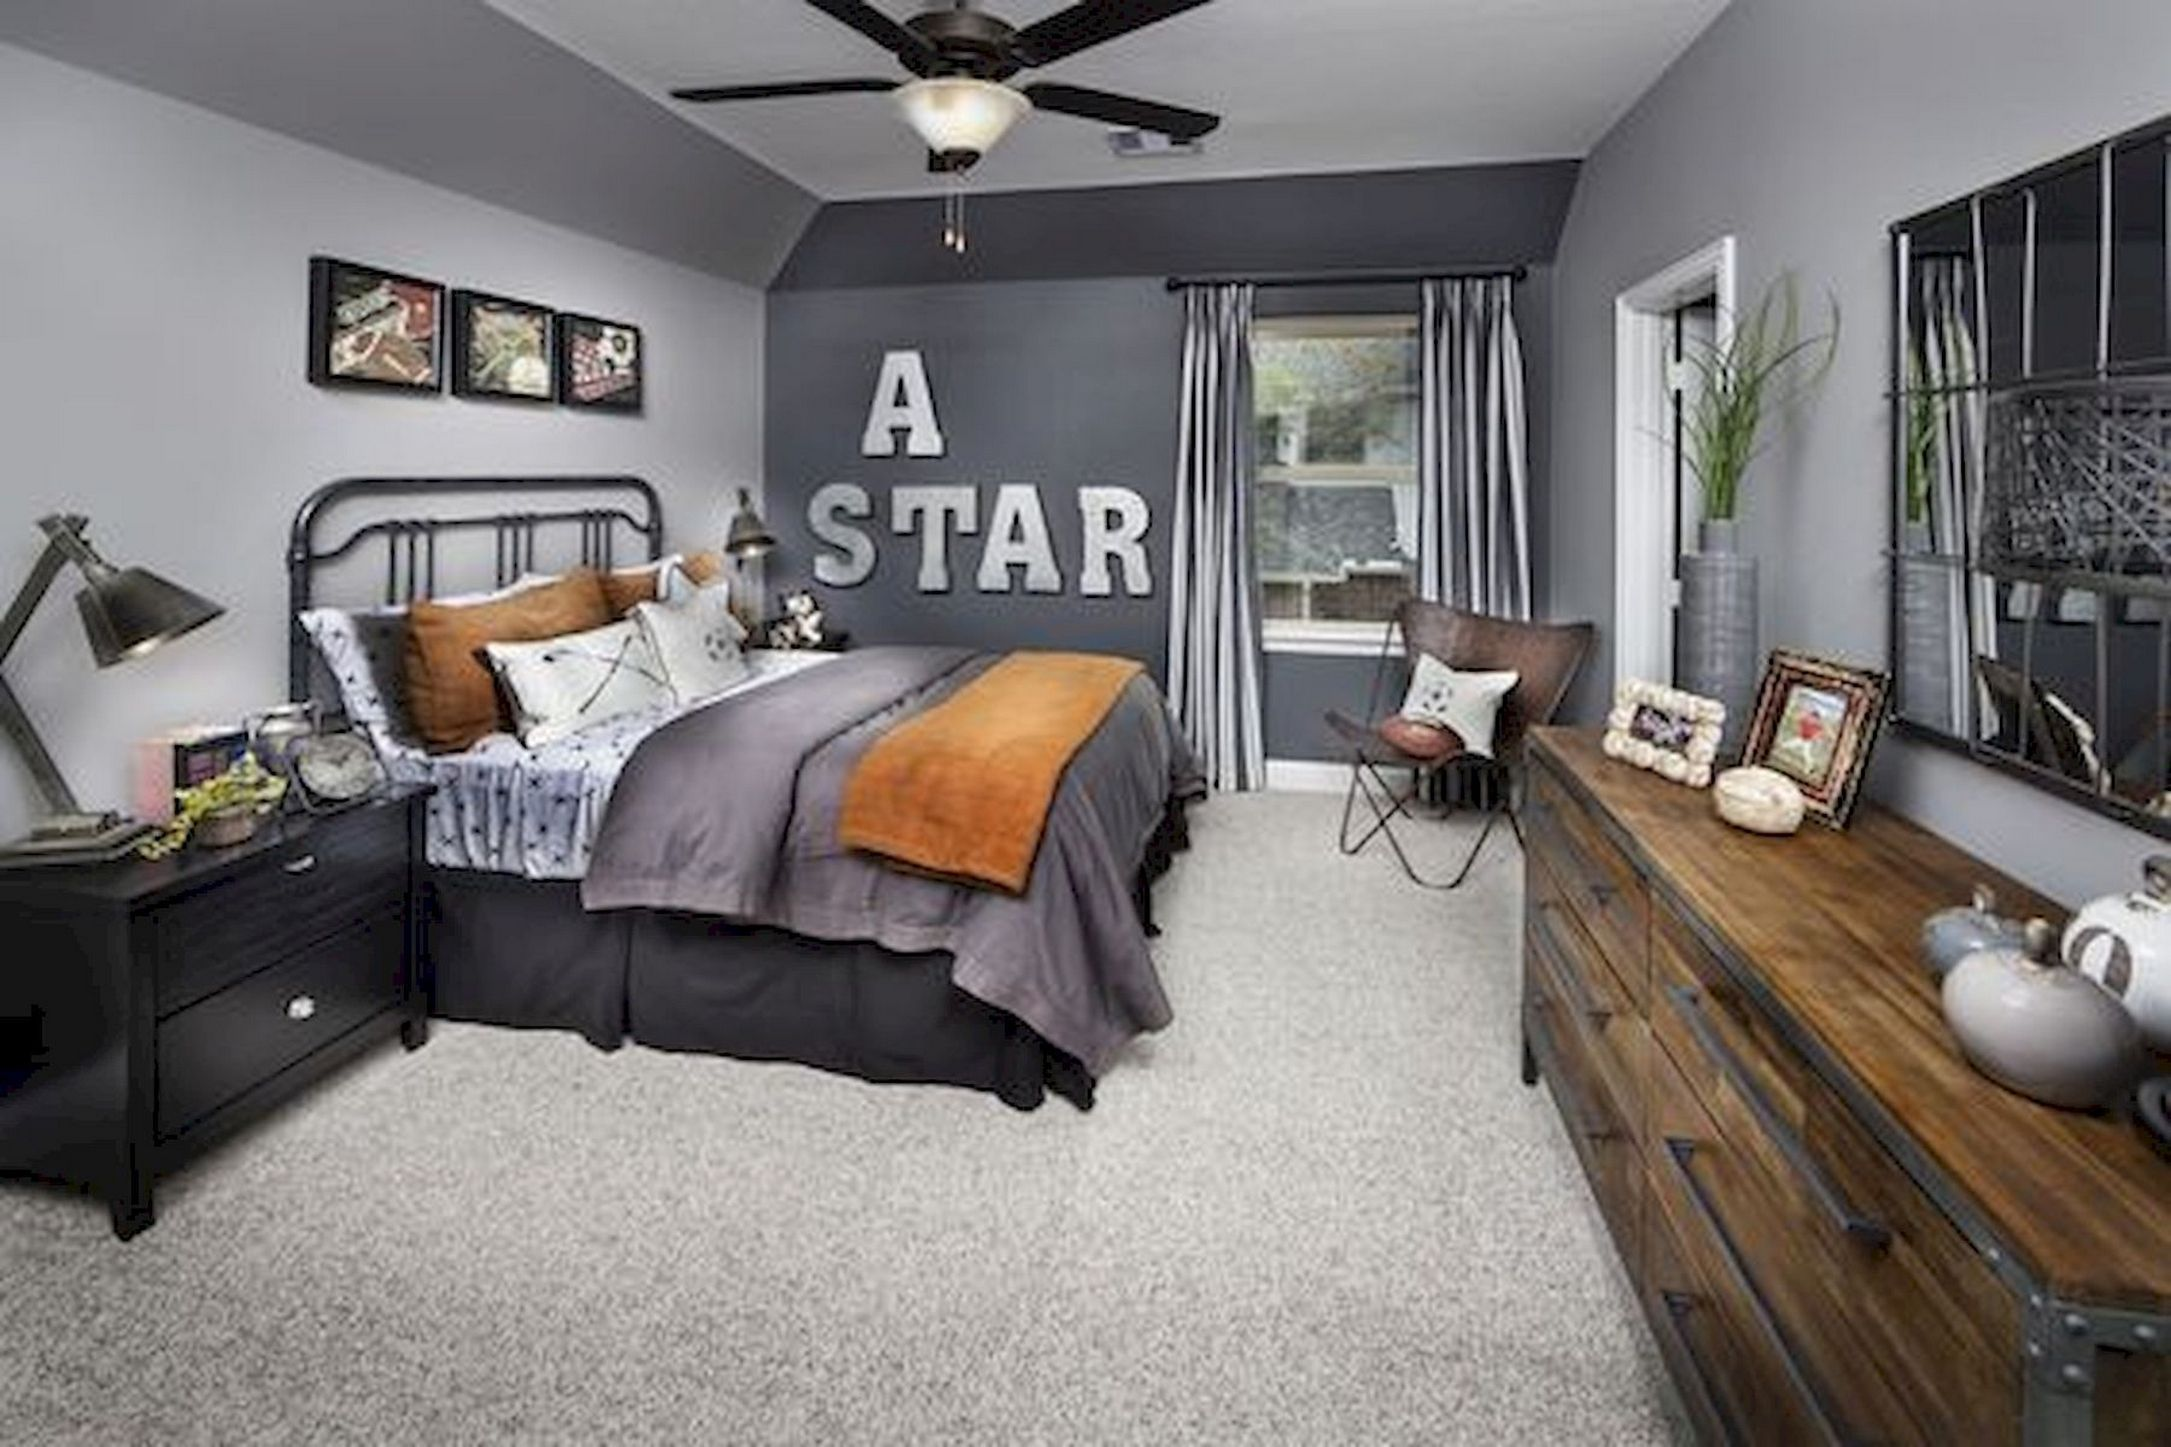 60 Amazing Cool Bedroom Ideas For Teenage Guys Small Rooms 33 Cool Bedrooms For Boys Boys Bedroom Decor Boys Bedrooms